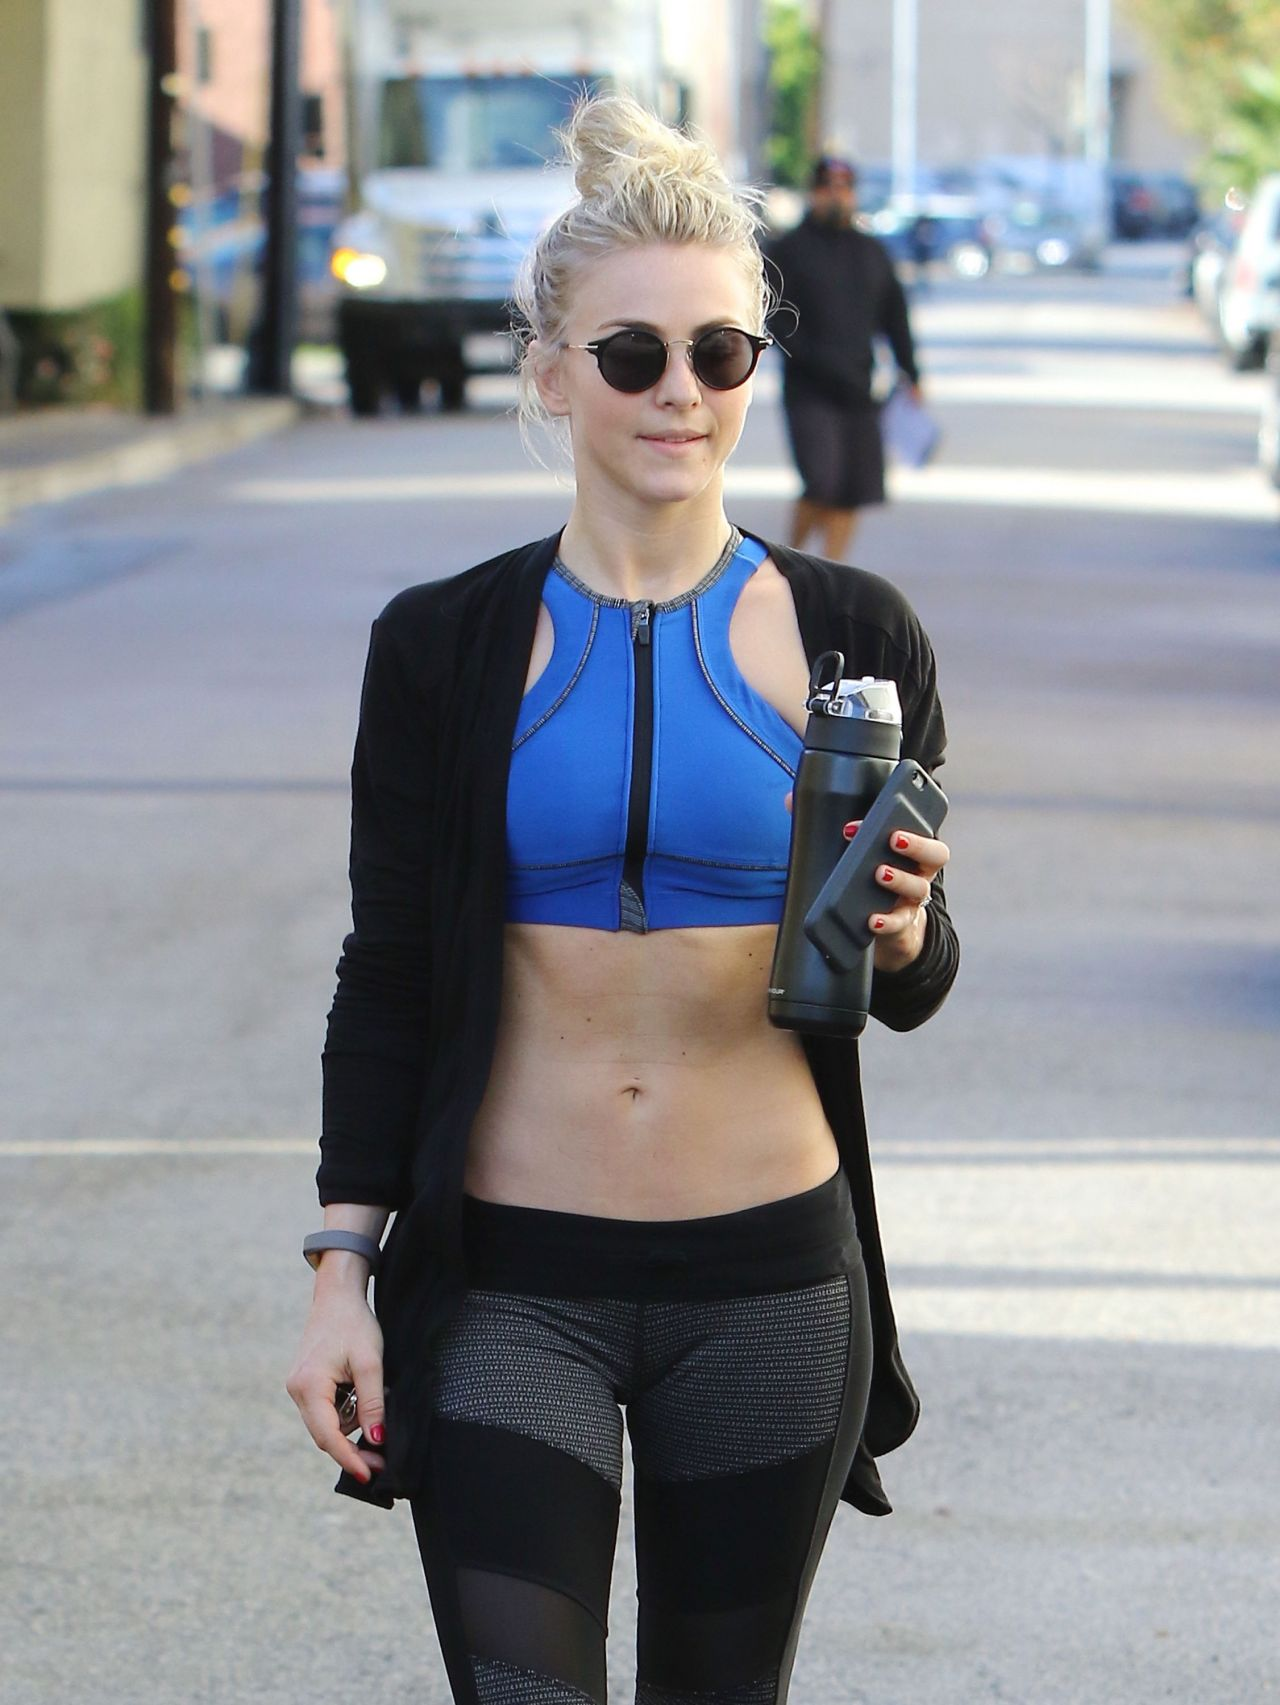 Julianne Hough At The Gym In Los Angeles 1 11 2017